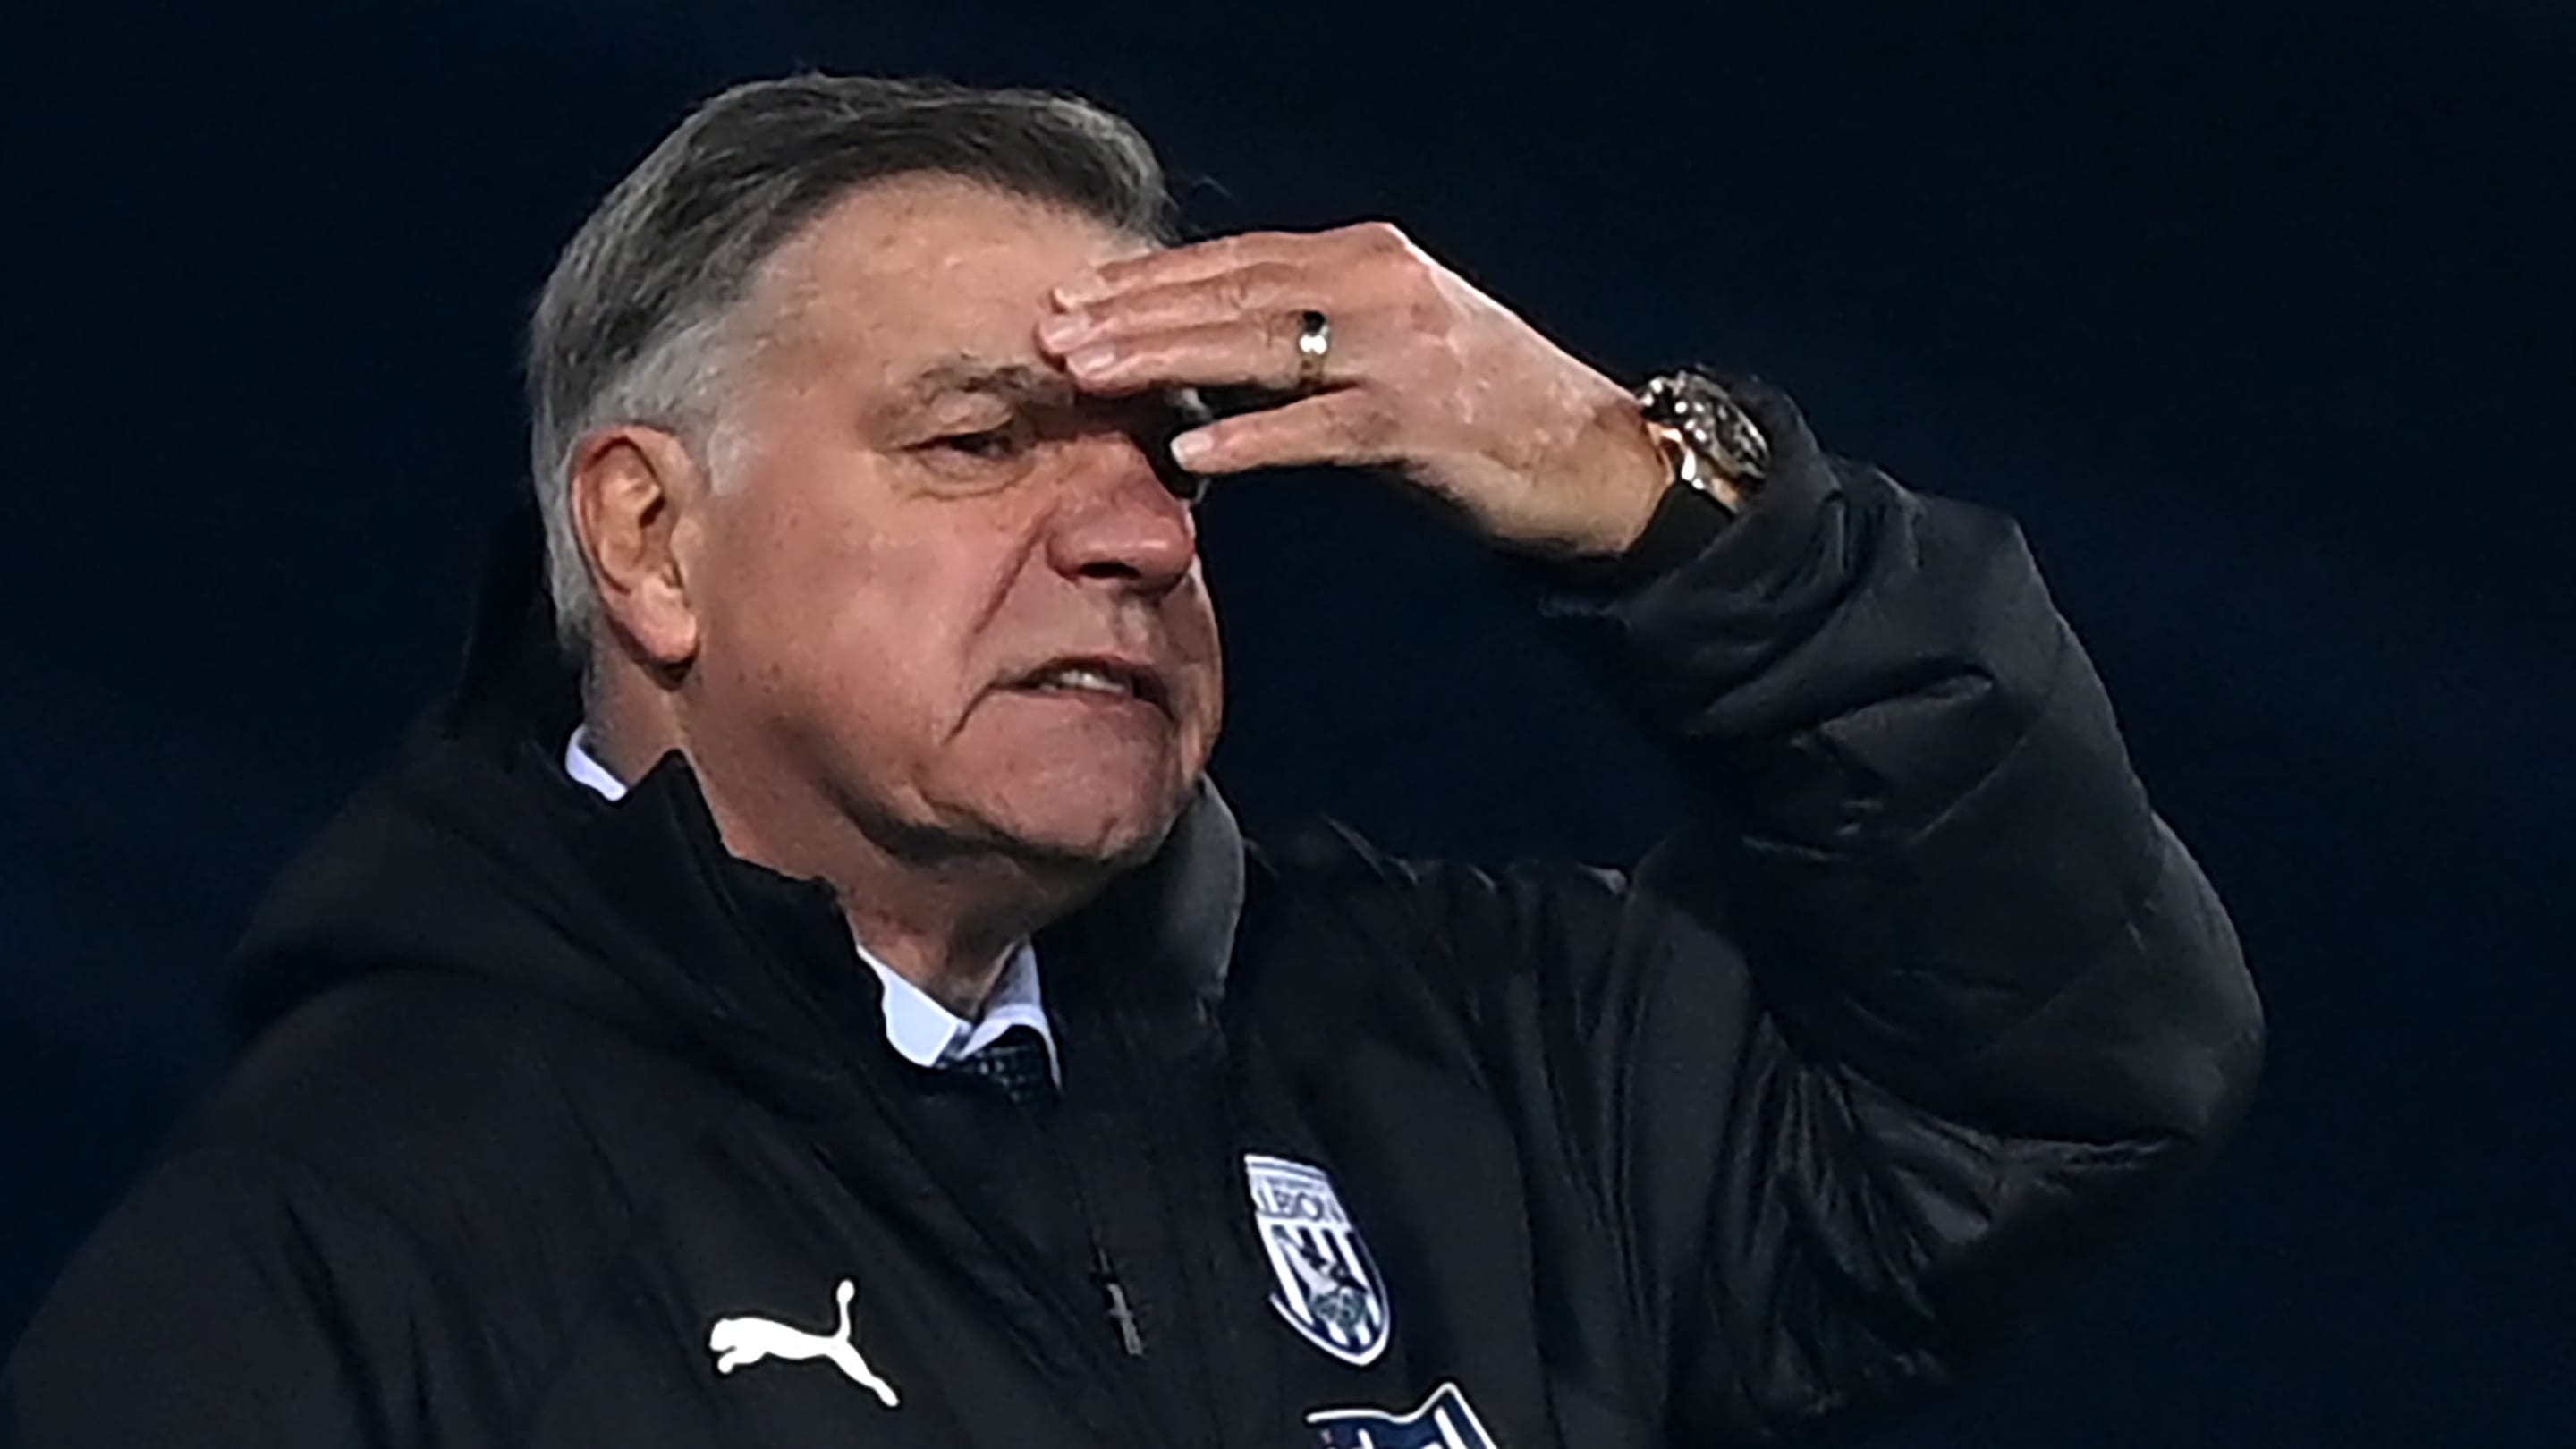 Sam Allardyce bemoans Brexit impact on West Brom transfers - despite being pro-Brexit